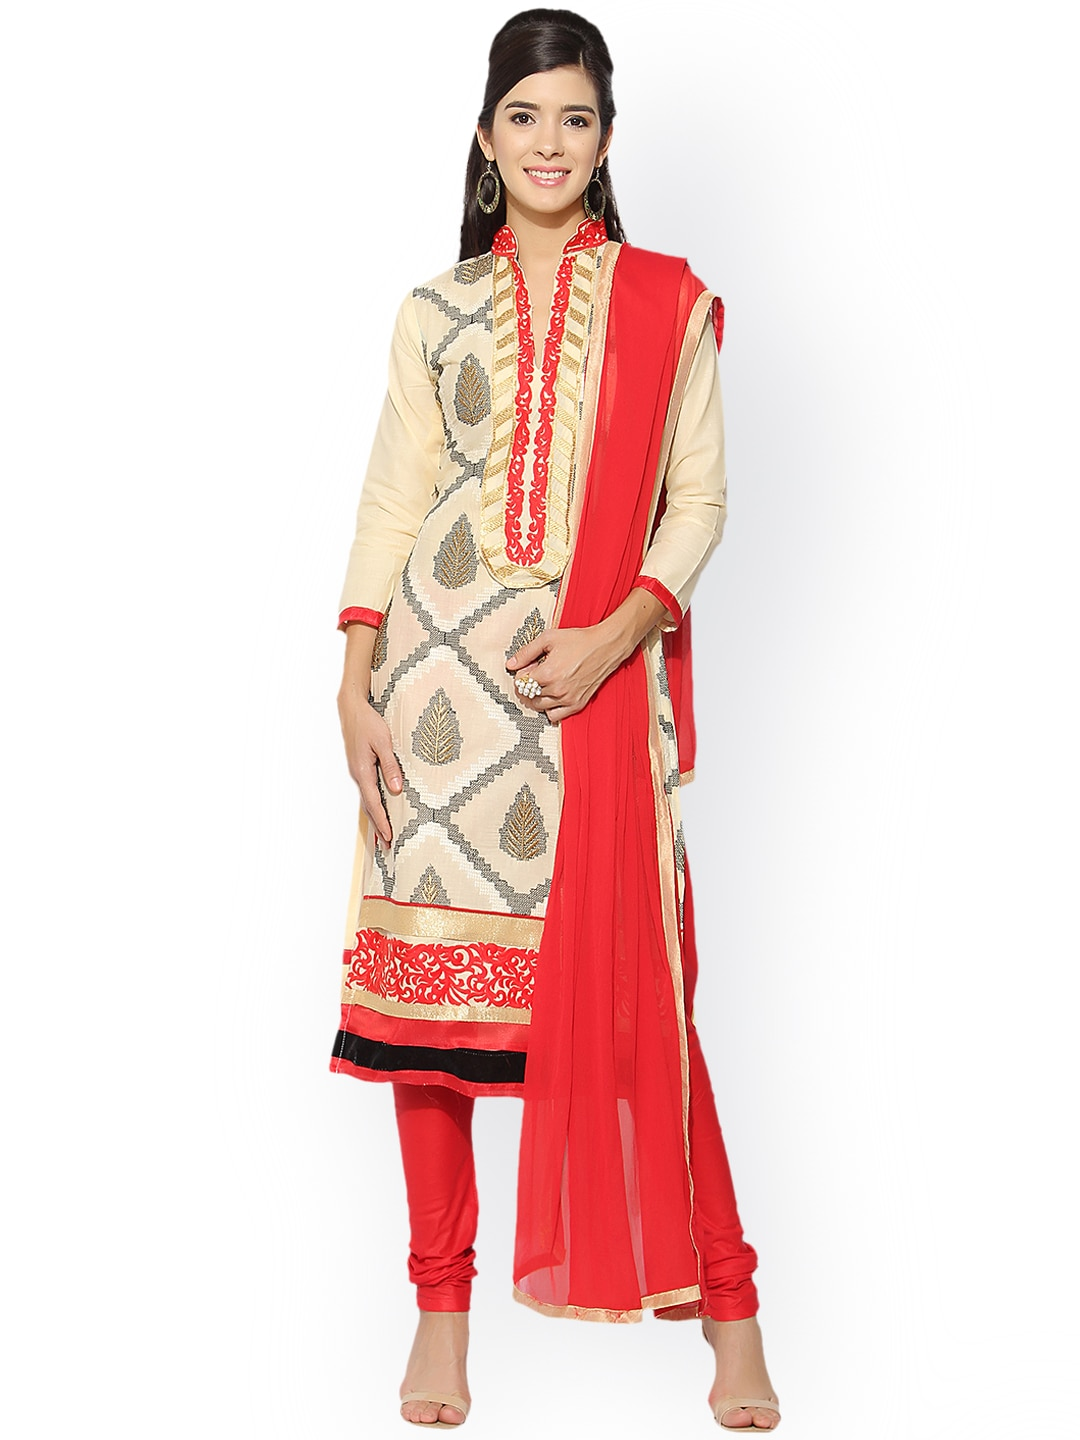 Blissta Cream-Coloured & Coral Cotton Blend Embroidered Unstitched Dress Material image